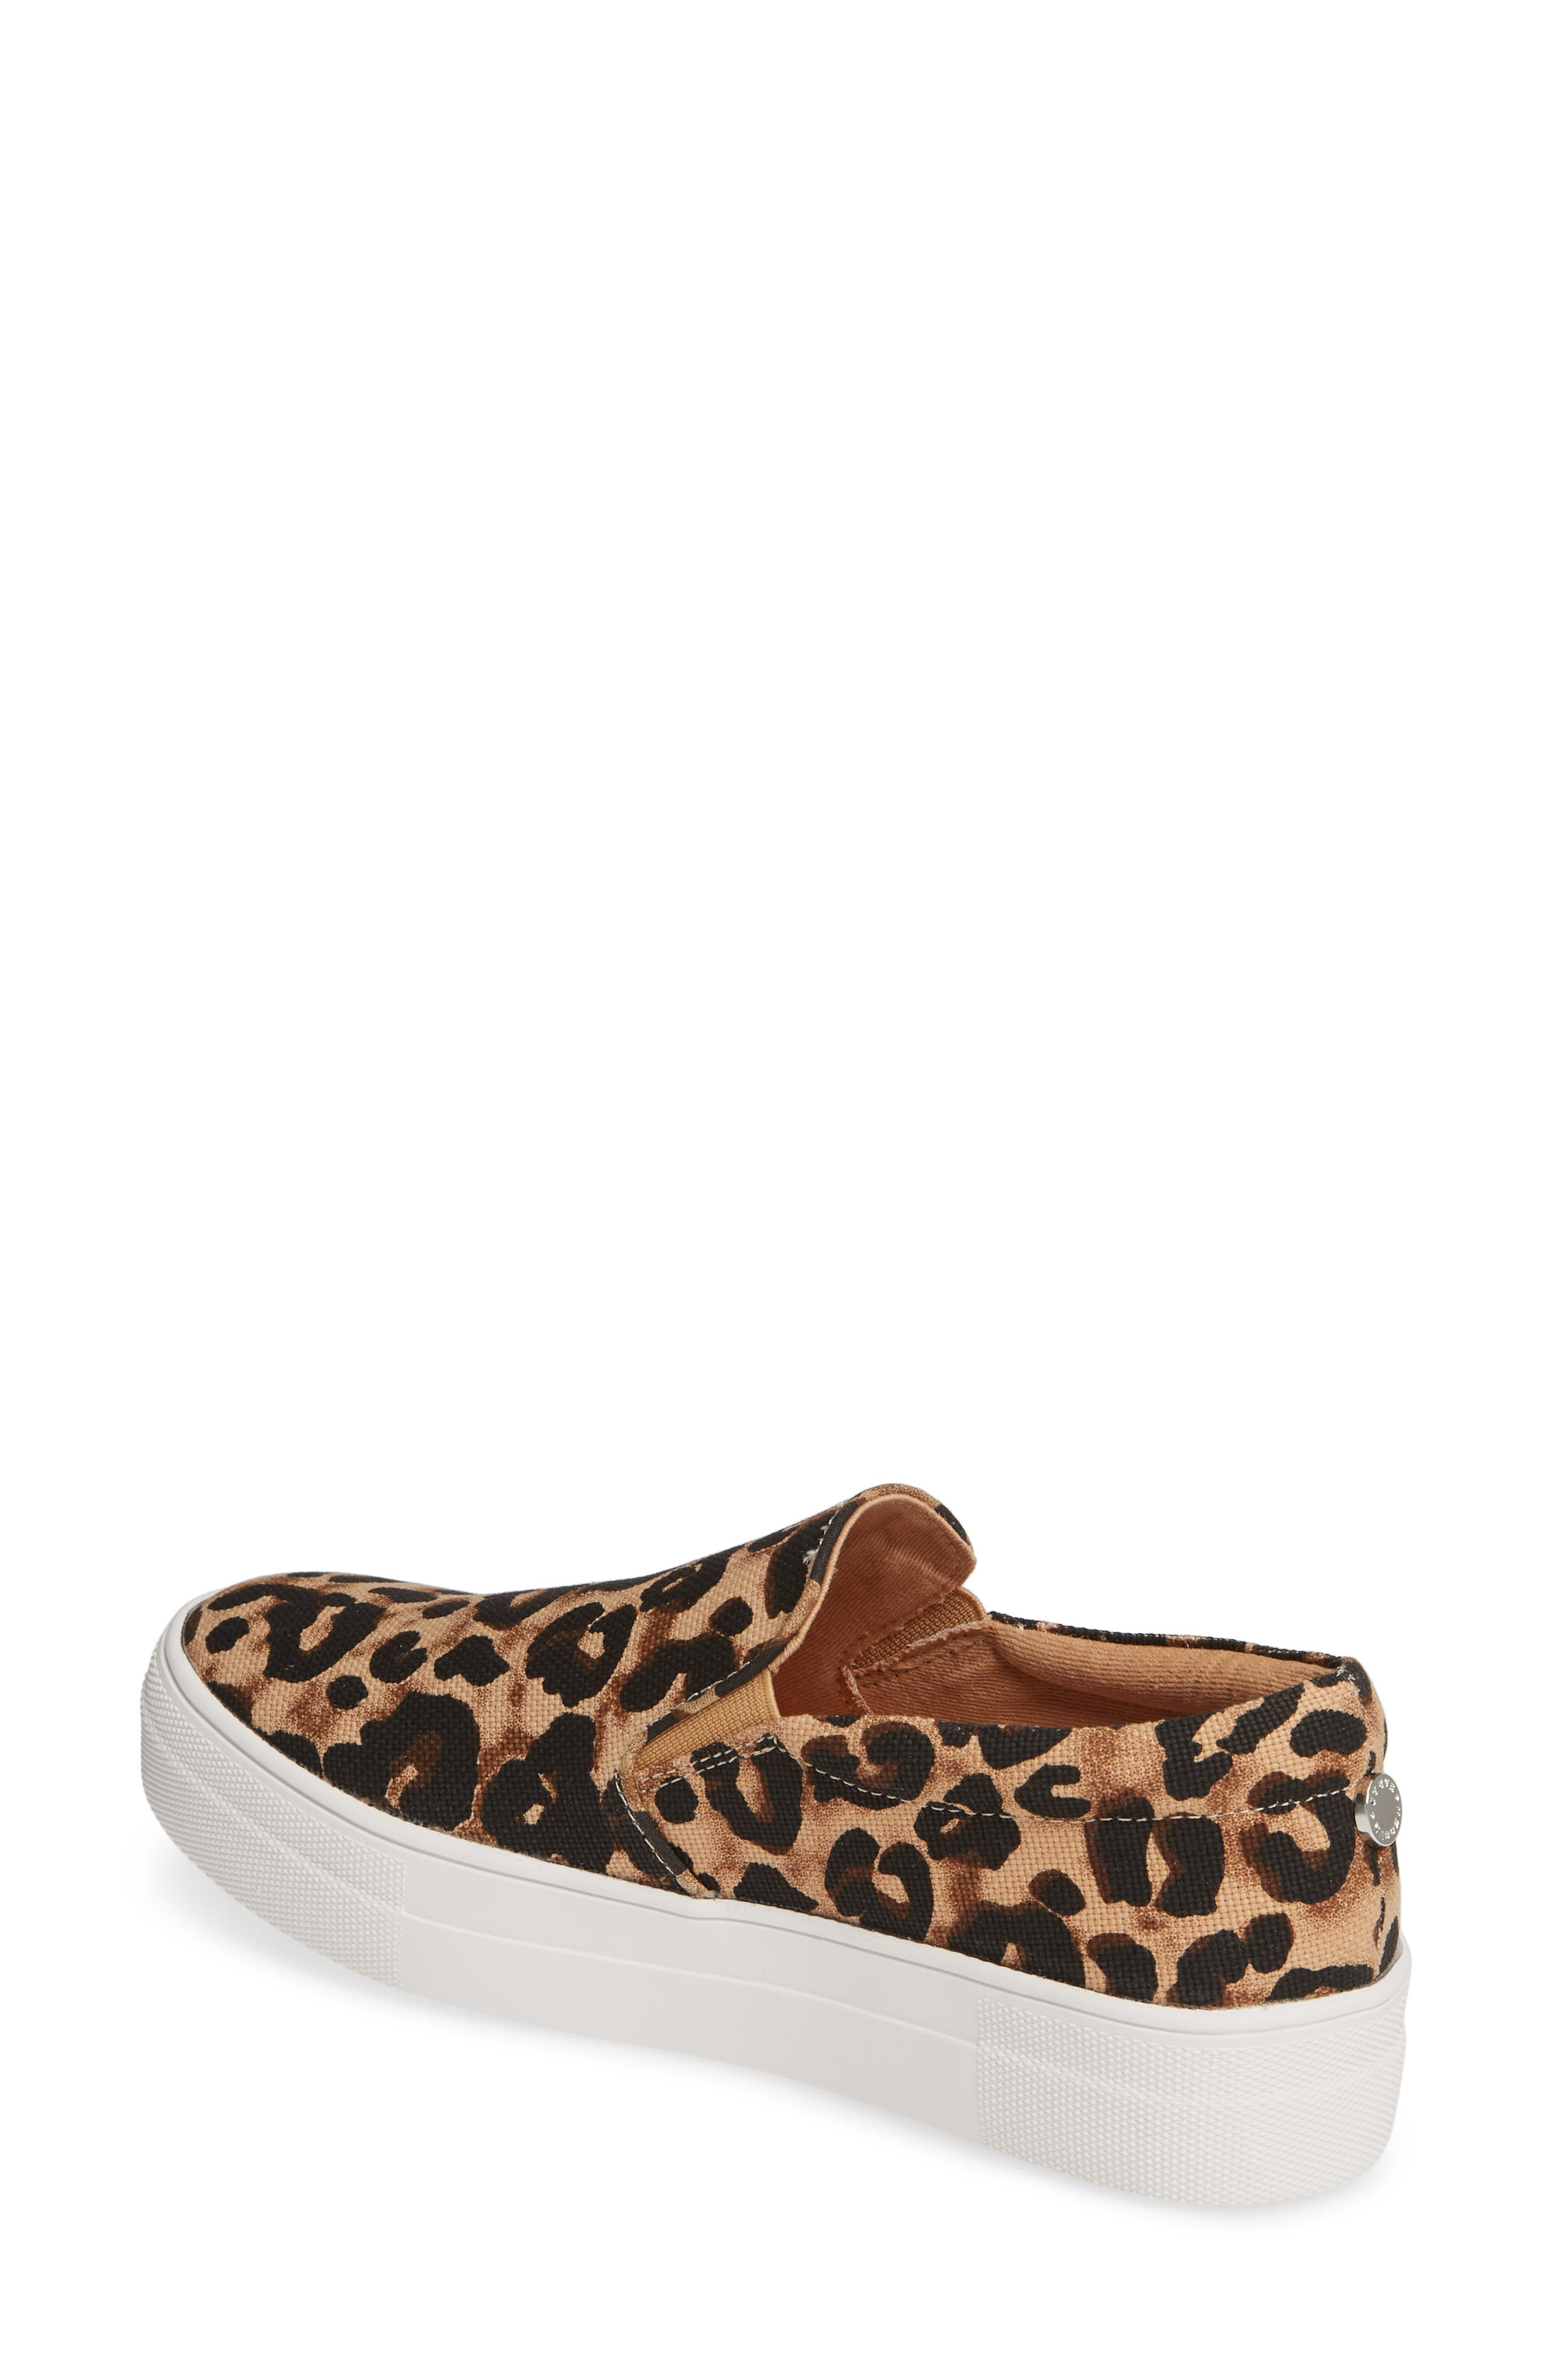 STEVE MADDEN,                             Gills Platform Slip-On Sneaker,                             Alternate thumbnail 2, color,                             LEOPARD PRINT